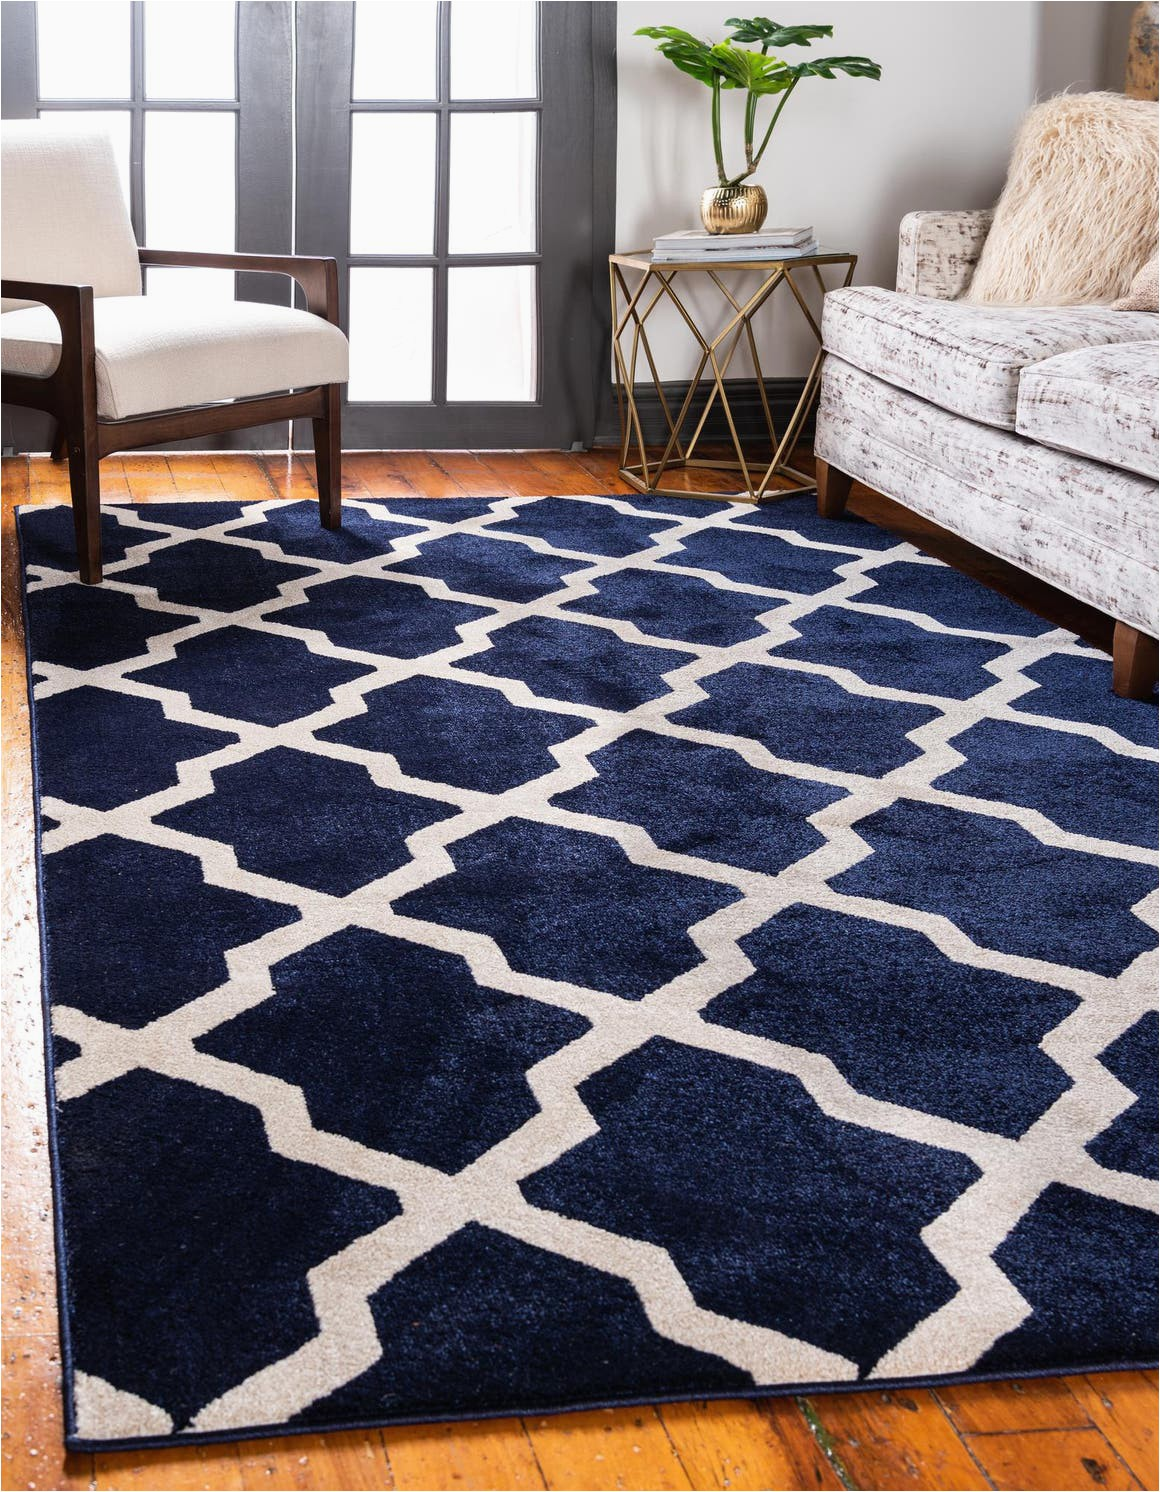 navy blue 9x12 lattice area rug